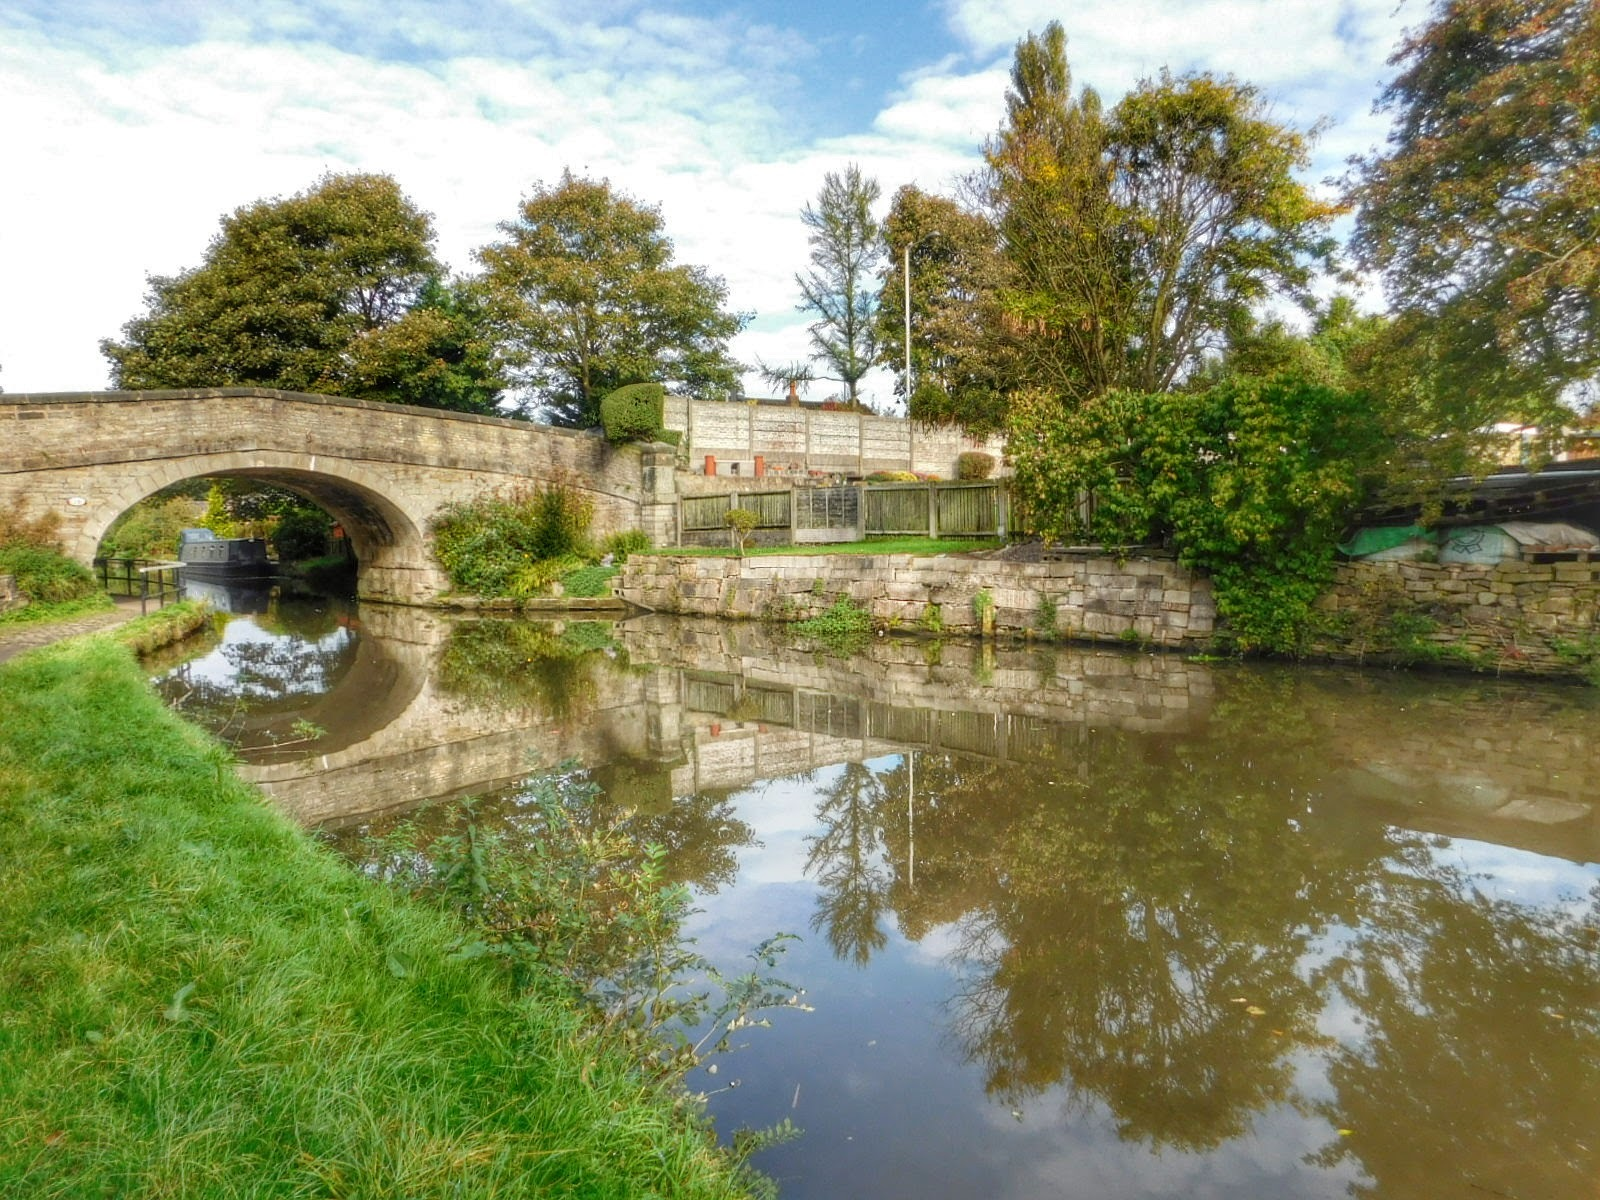 Parbold, Lancashire on the Canal, UK by Sheila Button